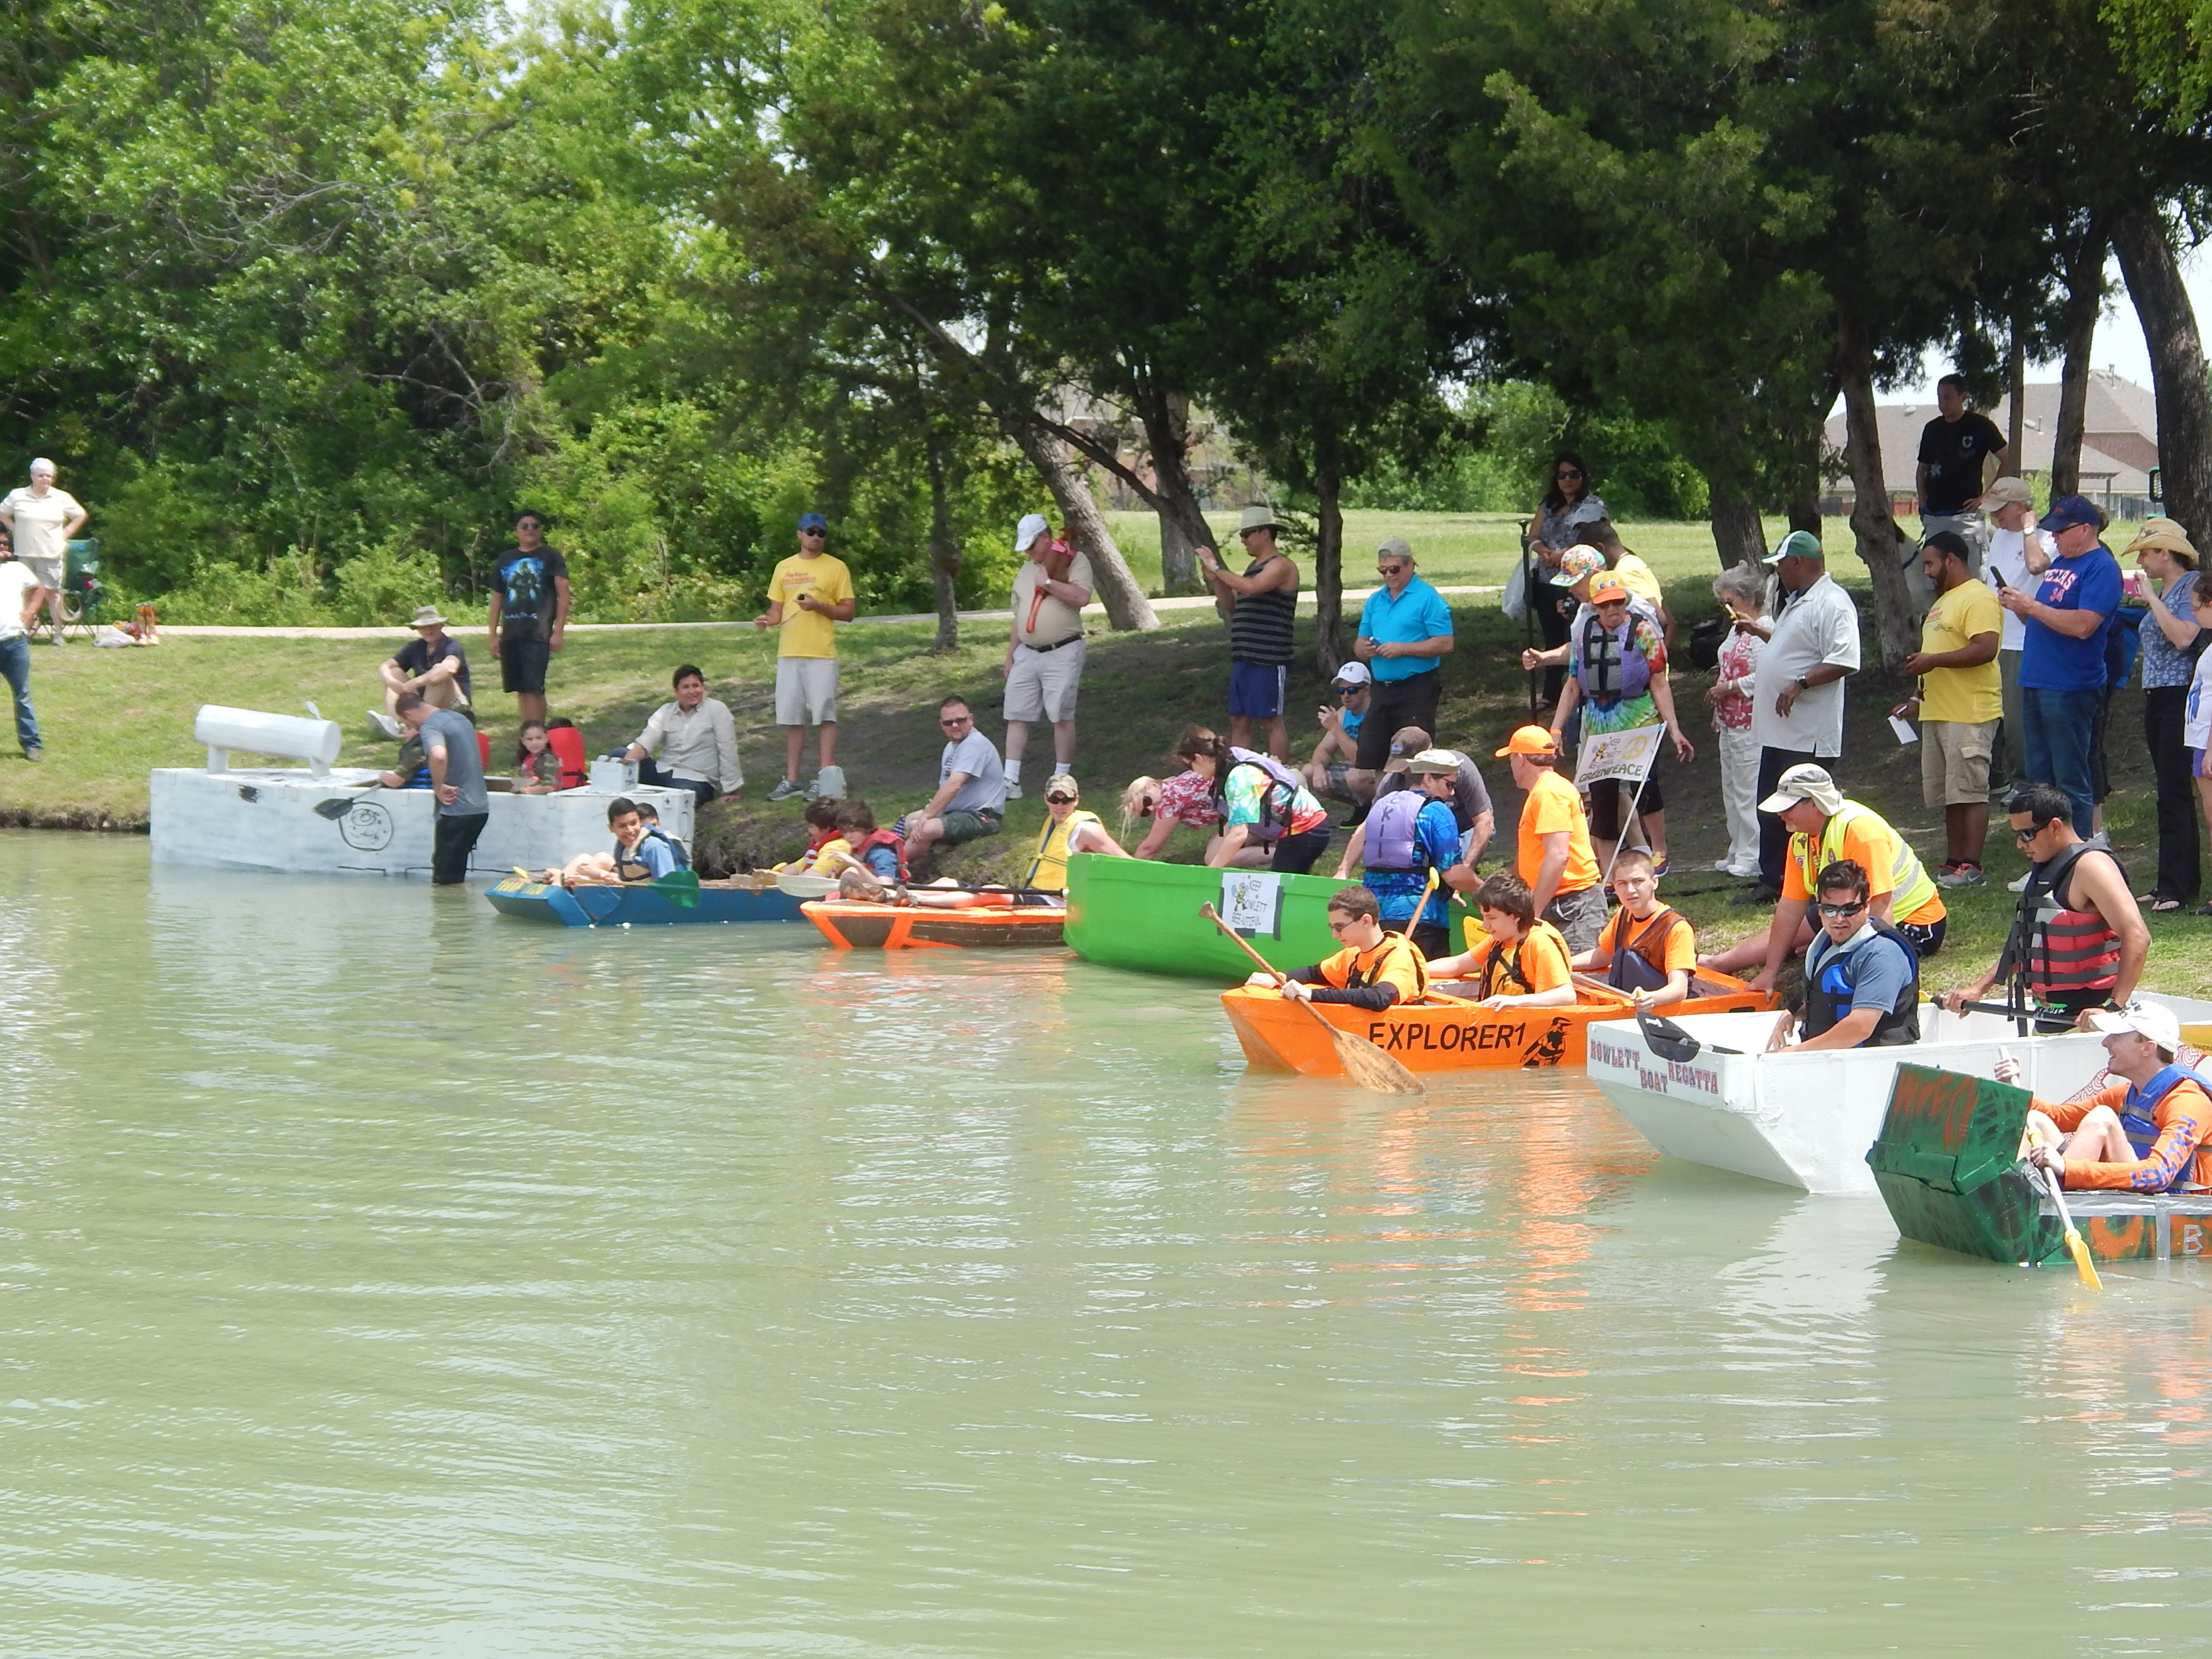 Many people getting into cardboard homemade boats